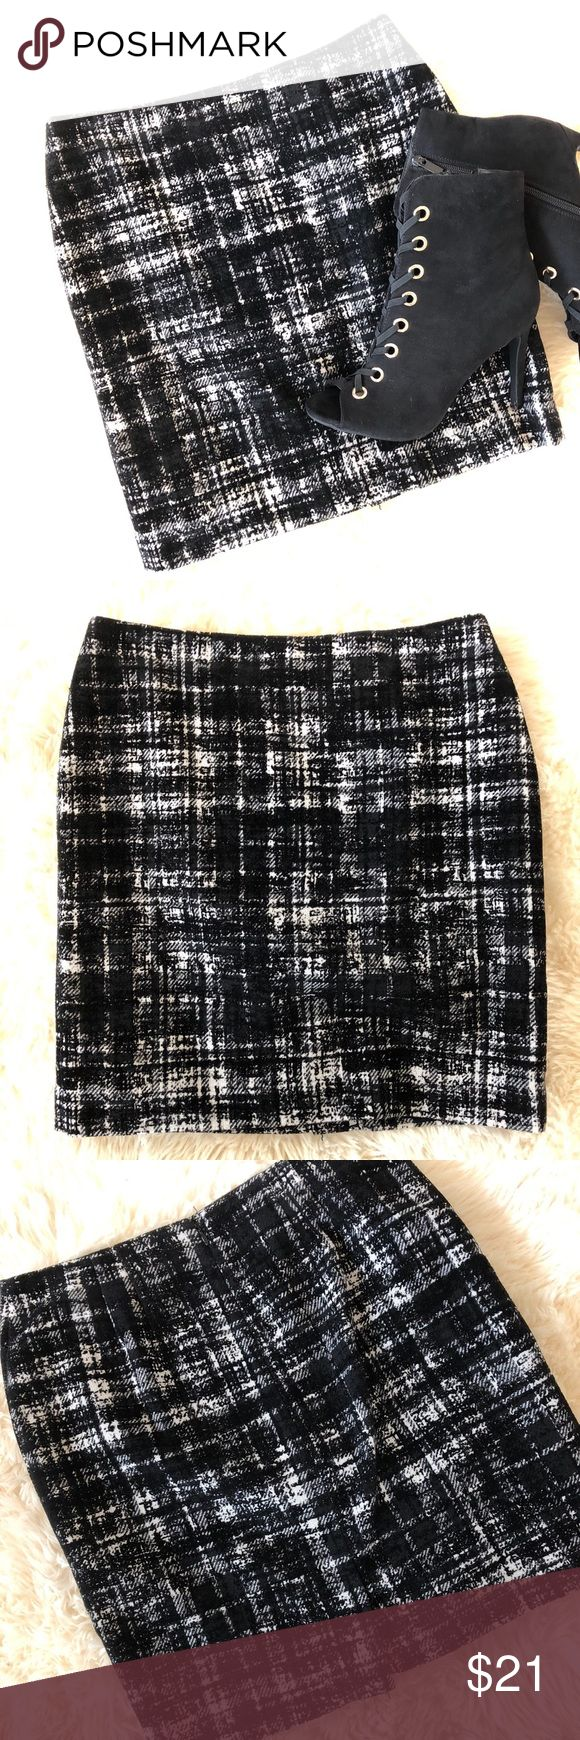 Ann Taylor Petite black white modern plaid skirt. Beautiful Ann Taylor petite black and white plaid skirt. Size 2P. EUC no rips tears or stains. Modern plaid design with a but if velvet flocking in places. 42% polyester 22% wool 22% acrylic. Fully lined zip back and back kick pleat. Elevate your work look with the skirt paired with a bright colored top. Ann Taylor Skirts